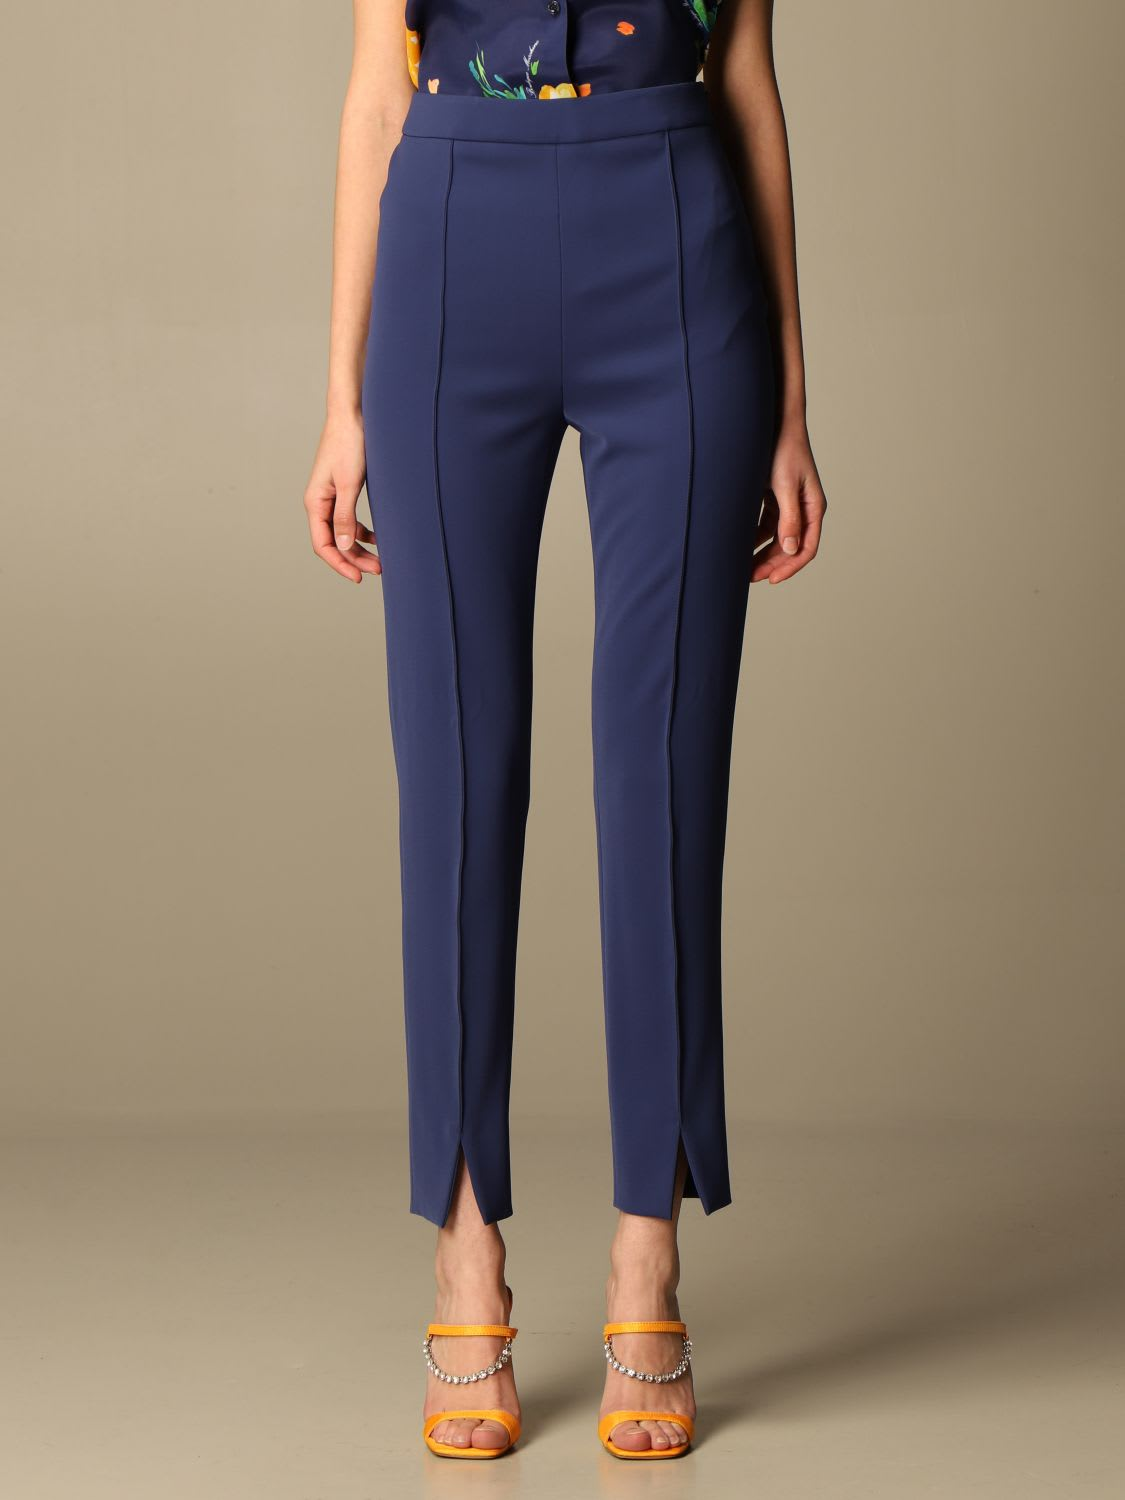 Boutique Moschino Pants Moschino Boutique Slim Cady Trousers